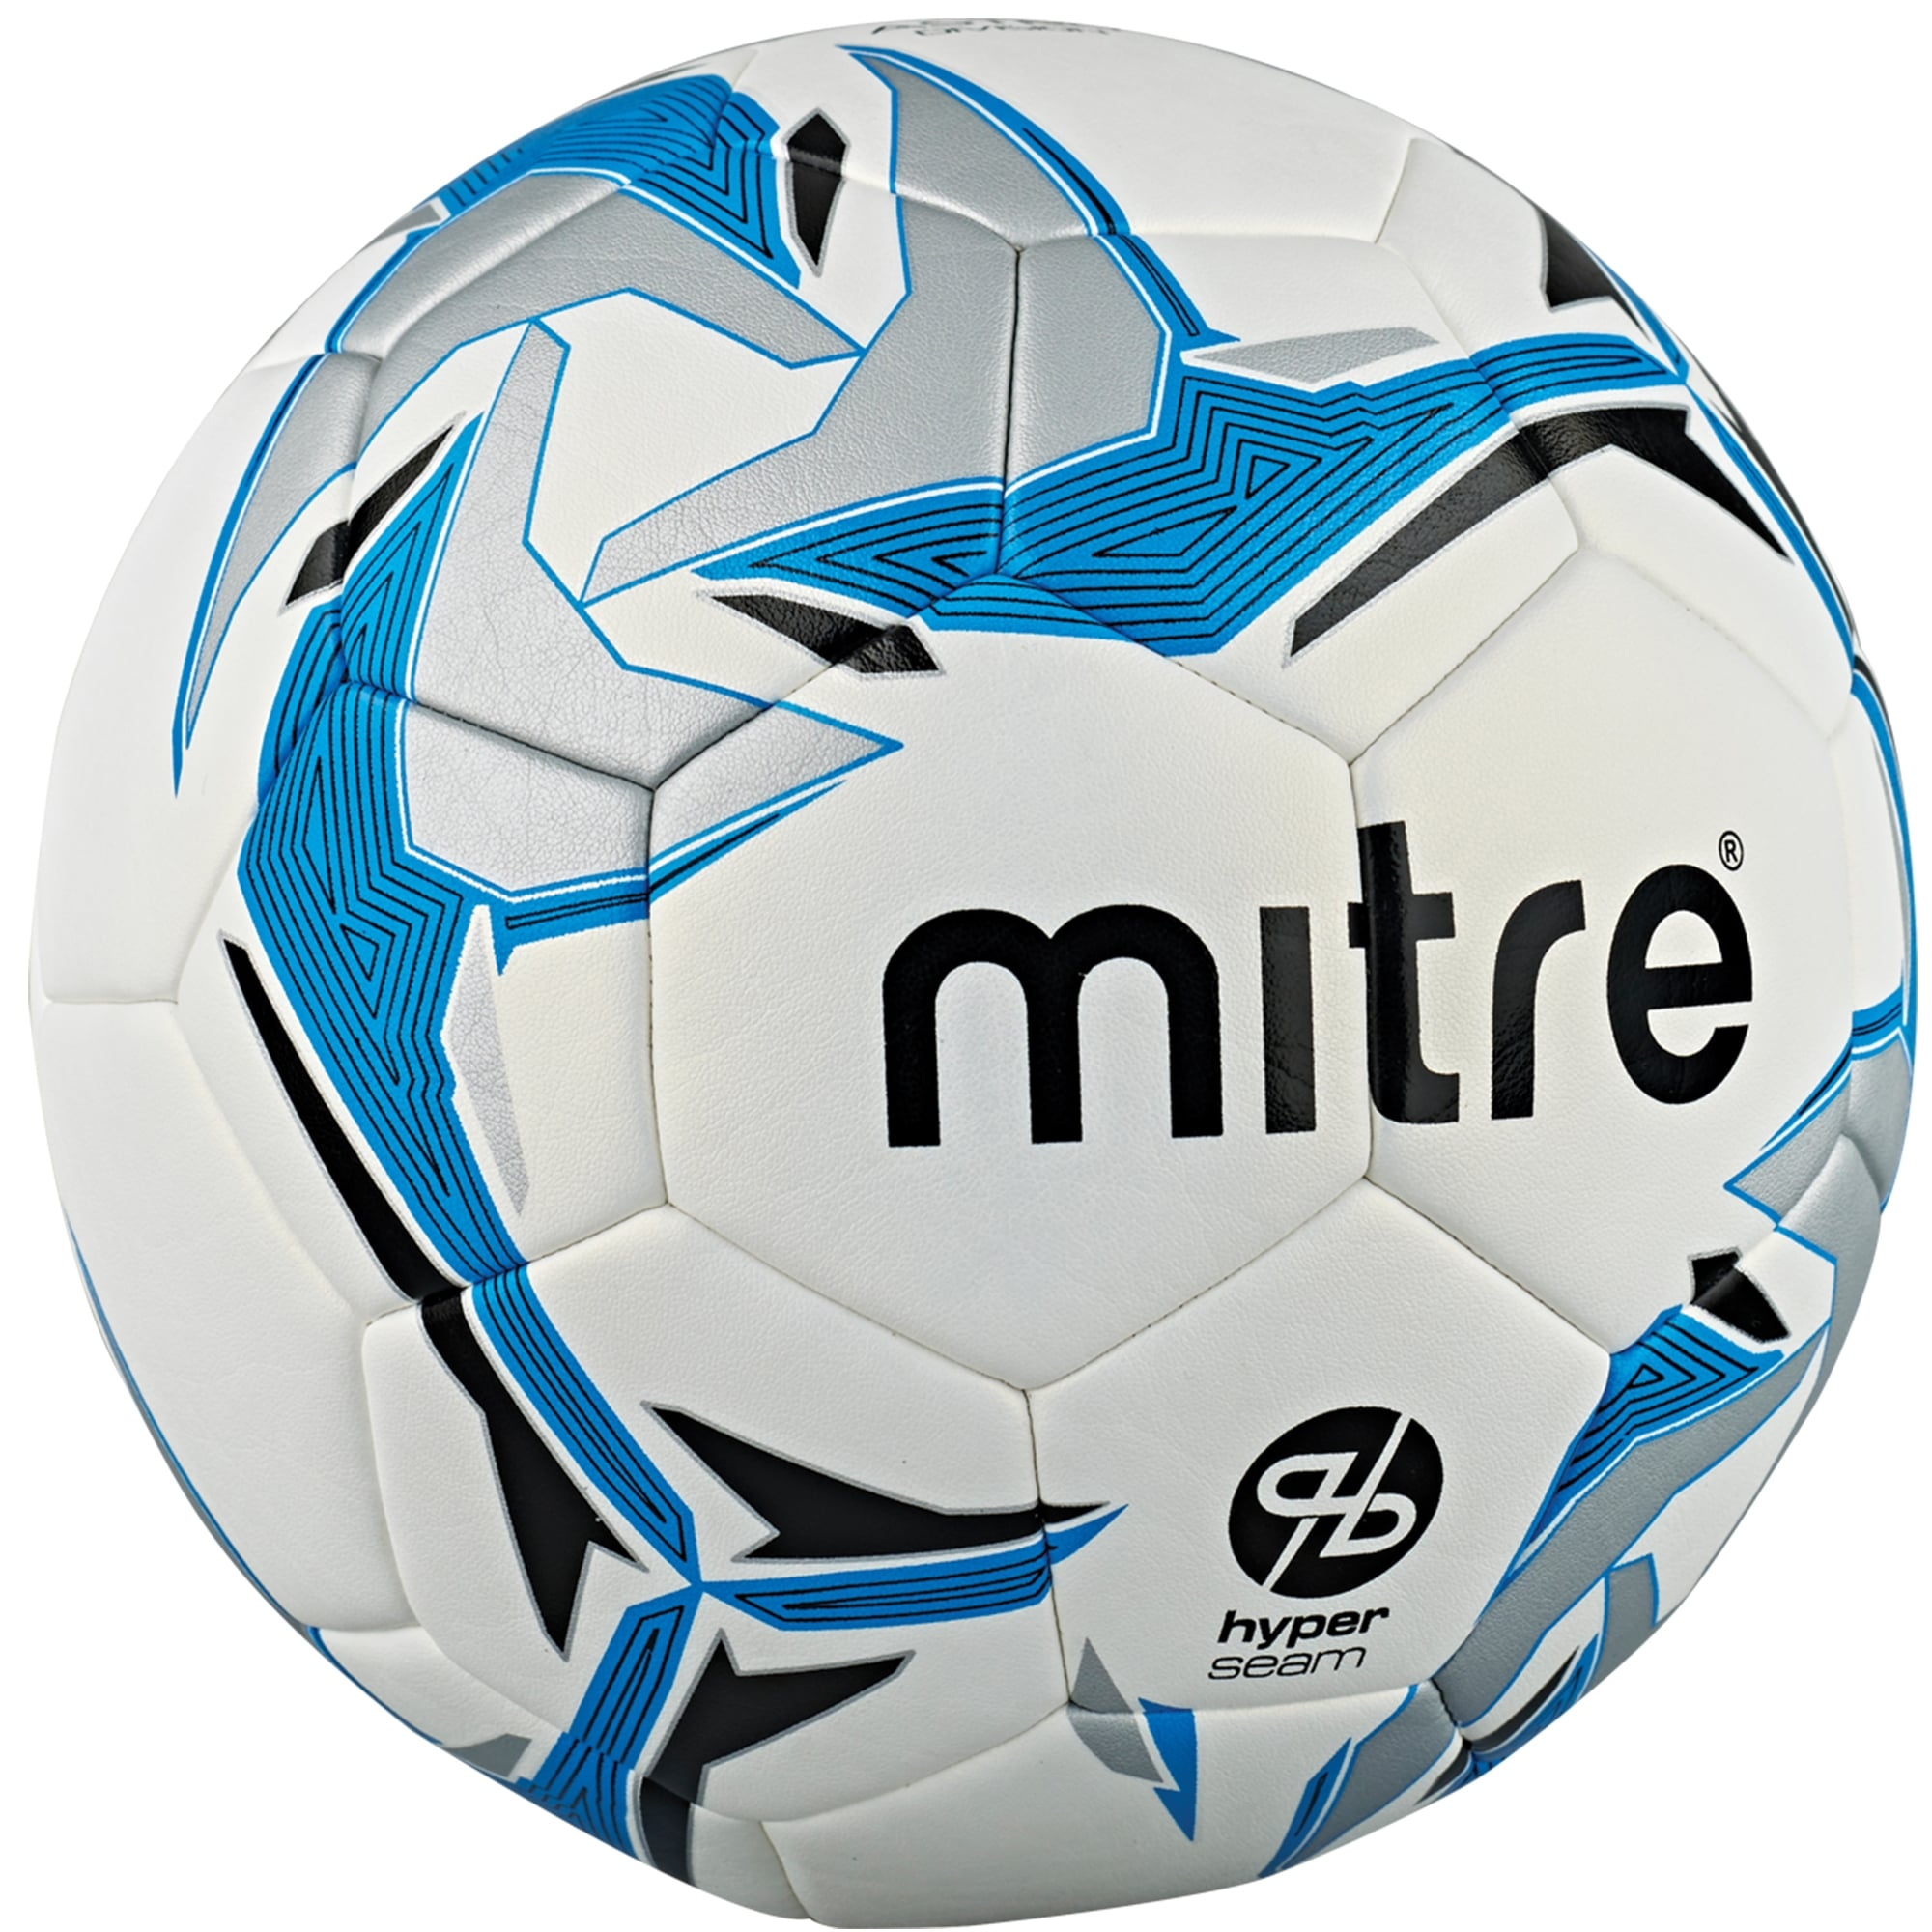 Mitre Astro Division Astroturf Match Ball with Hand Pump